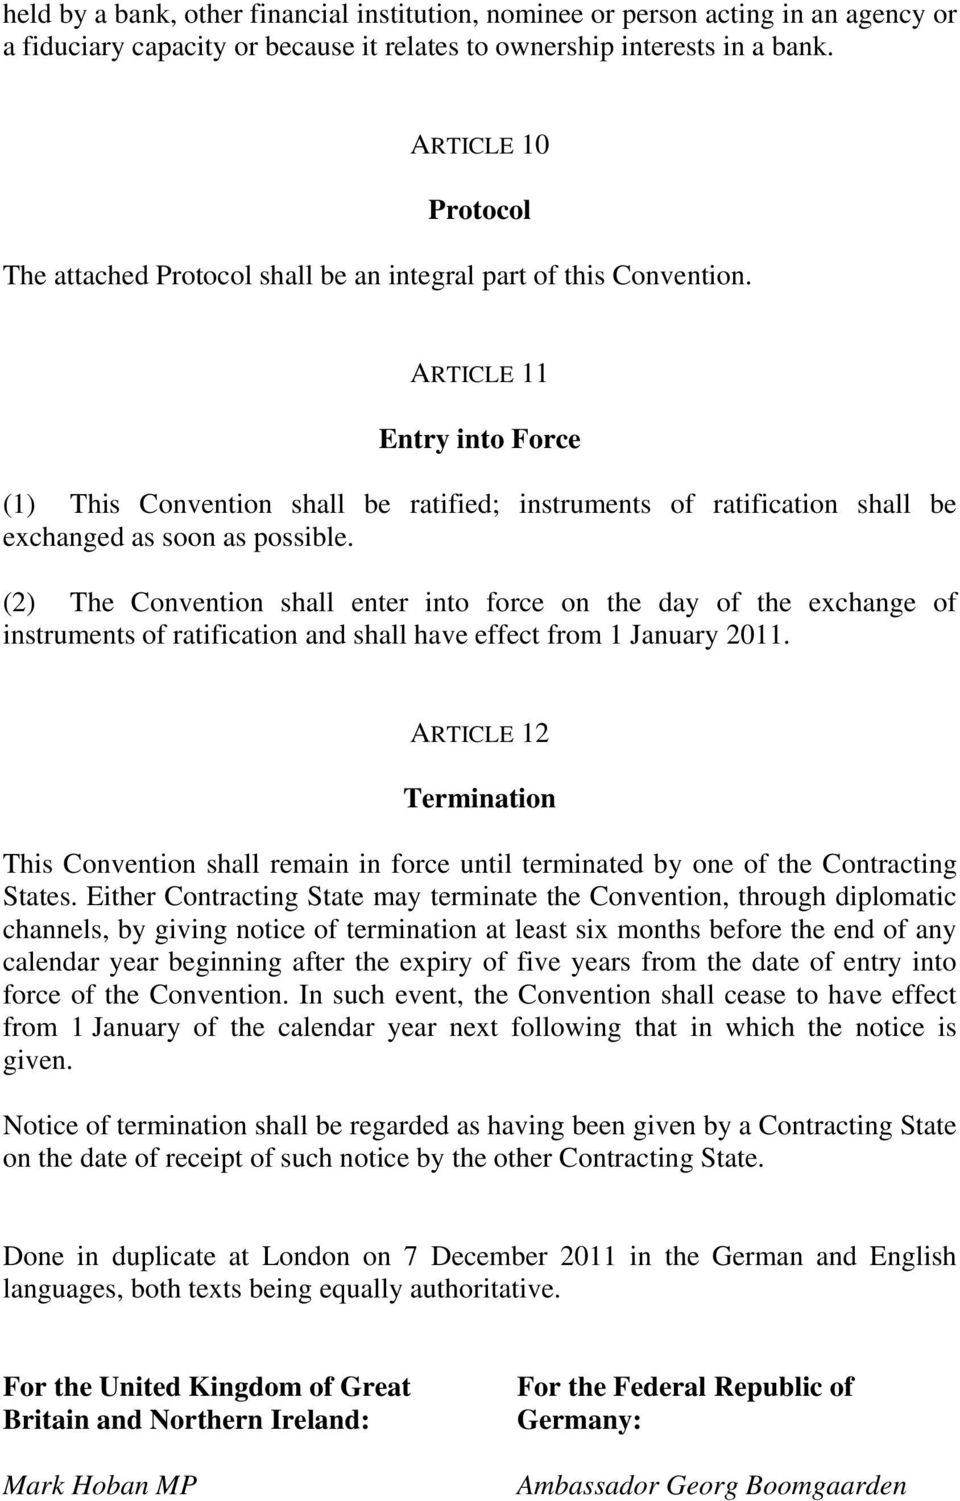 ARTICLE 11 Entry into Force (1) This Convention shall be ratified; instruments of ratification shall be exchanged as soon as possible.